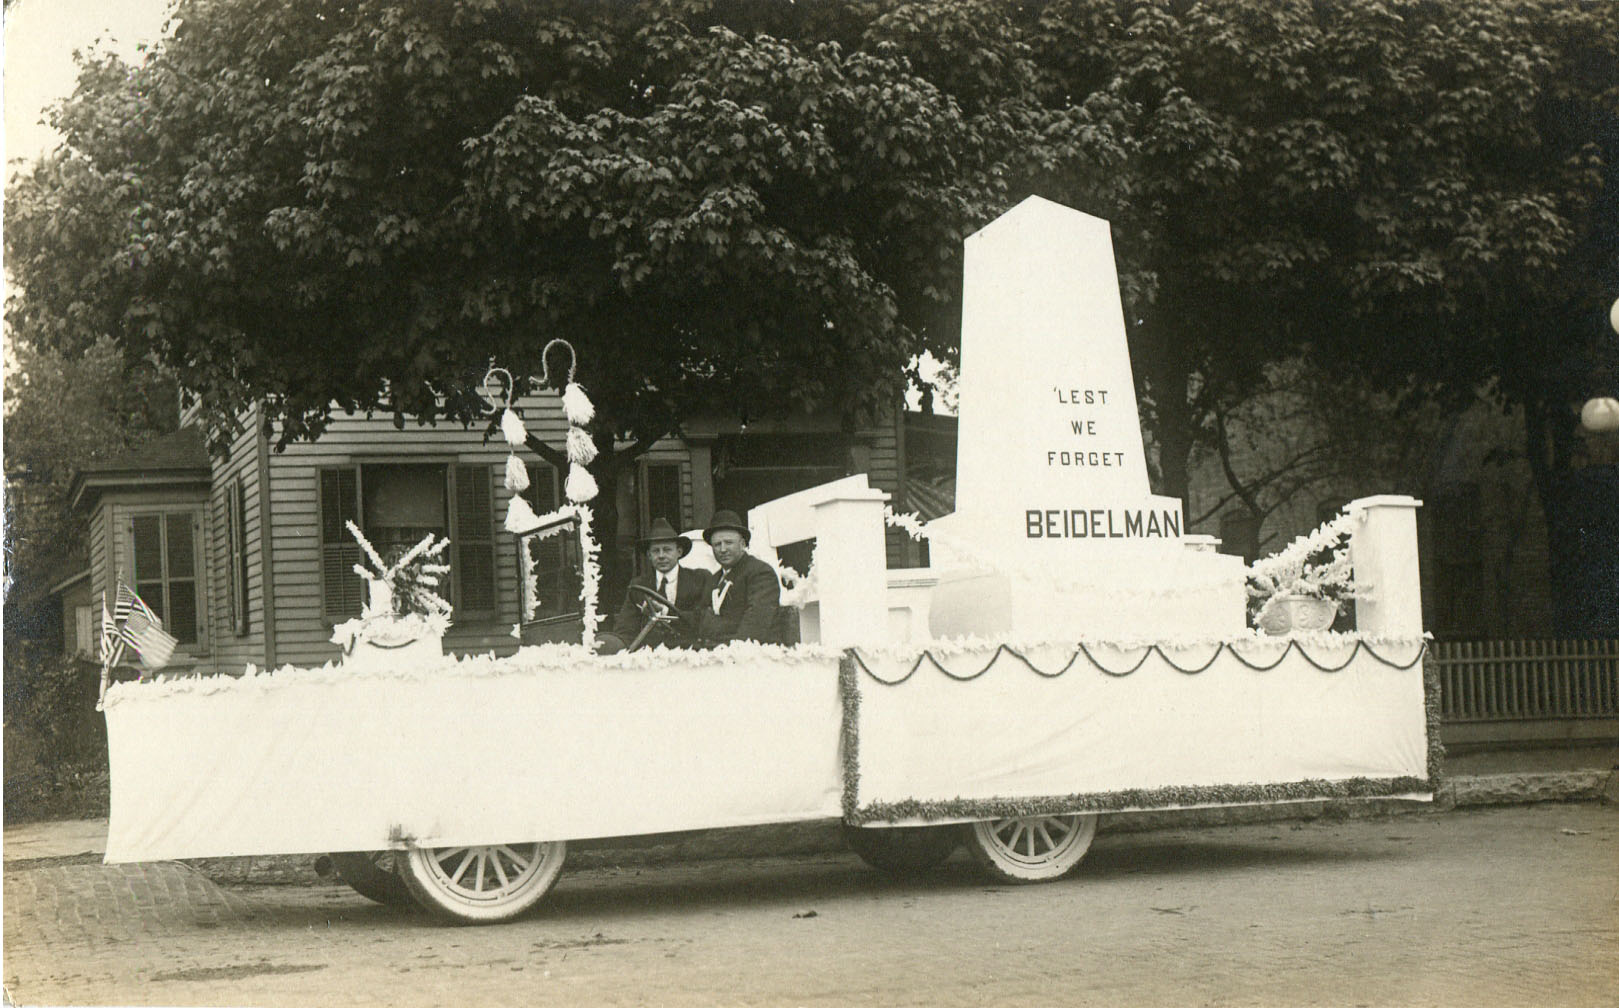 Home Coming parade postcard